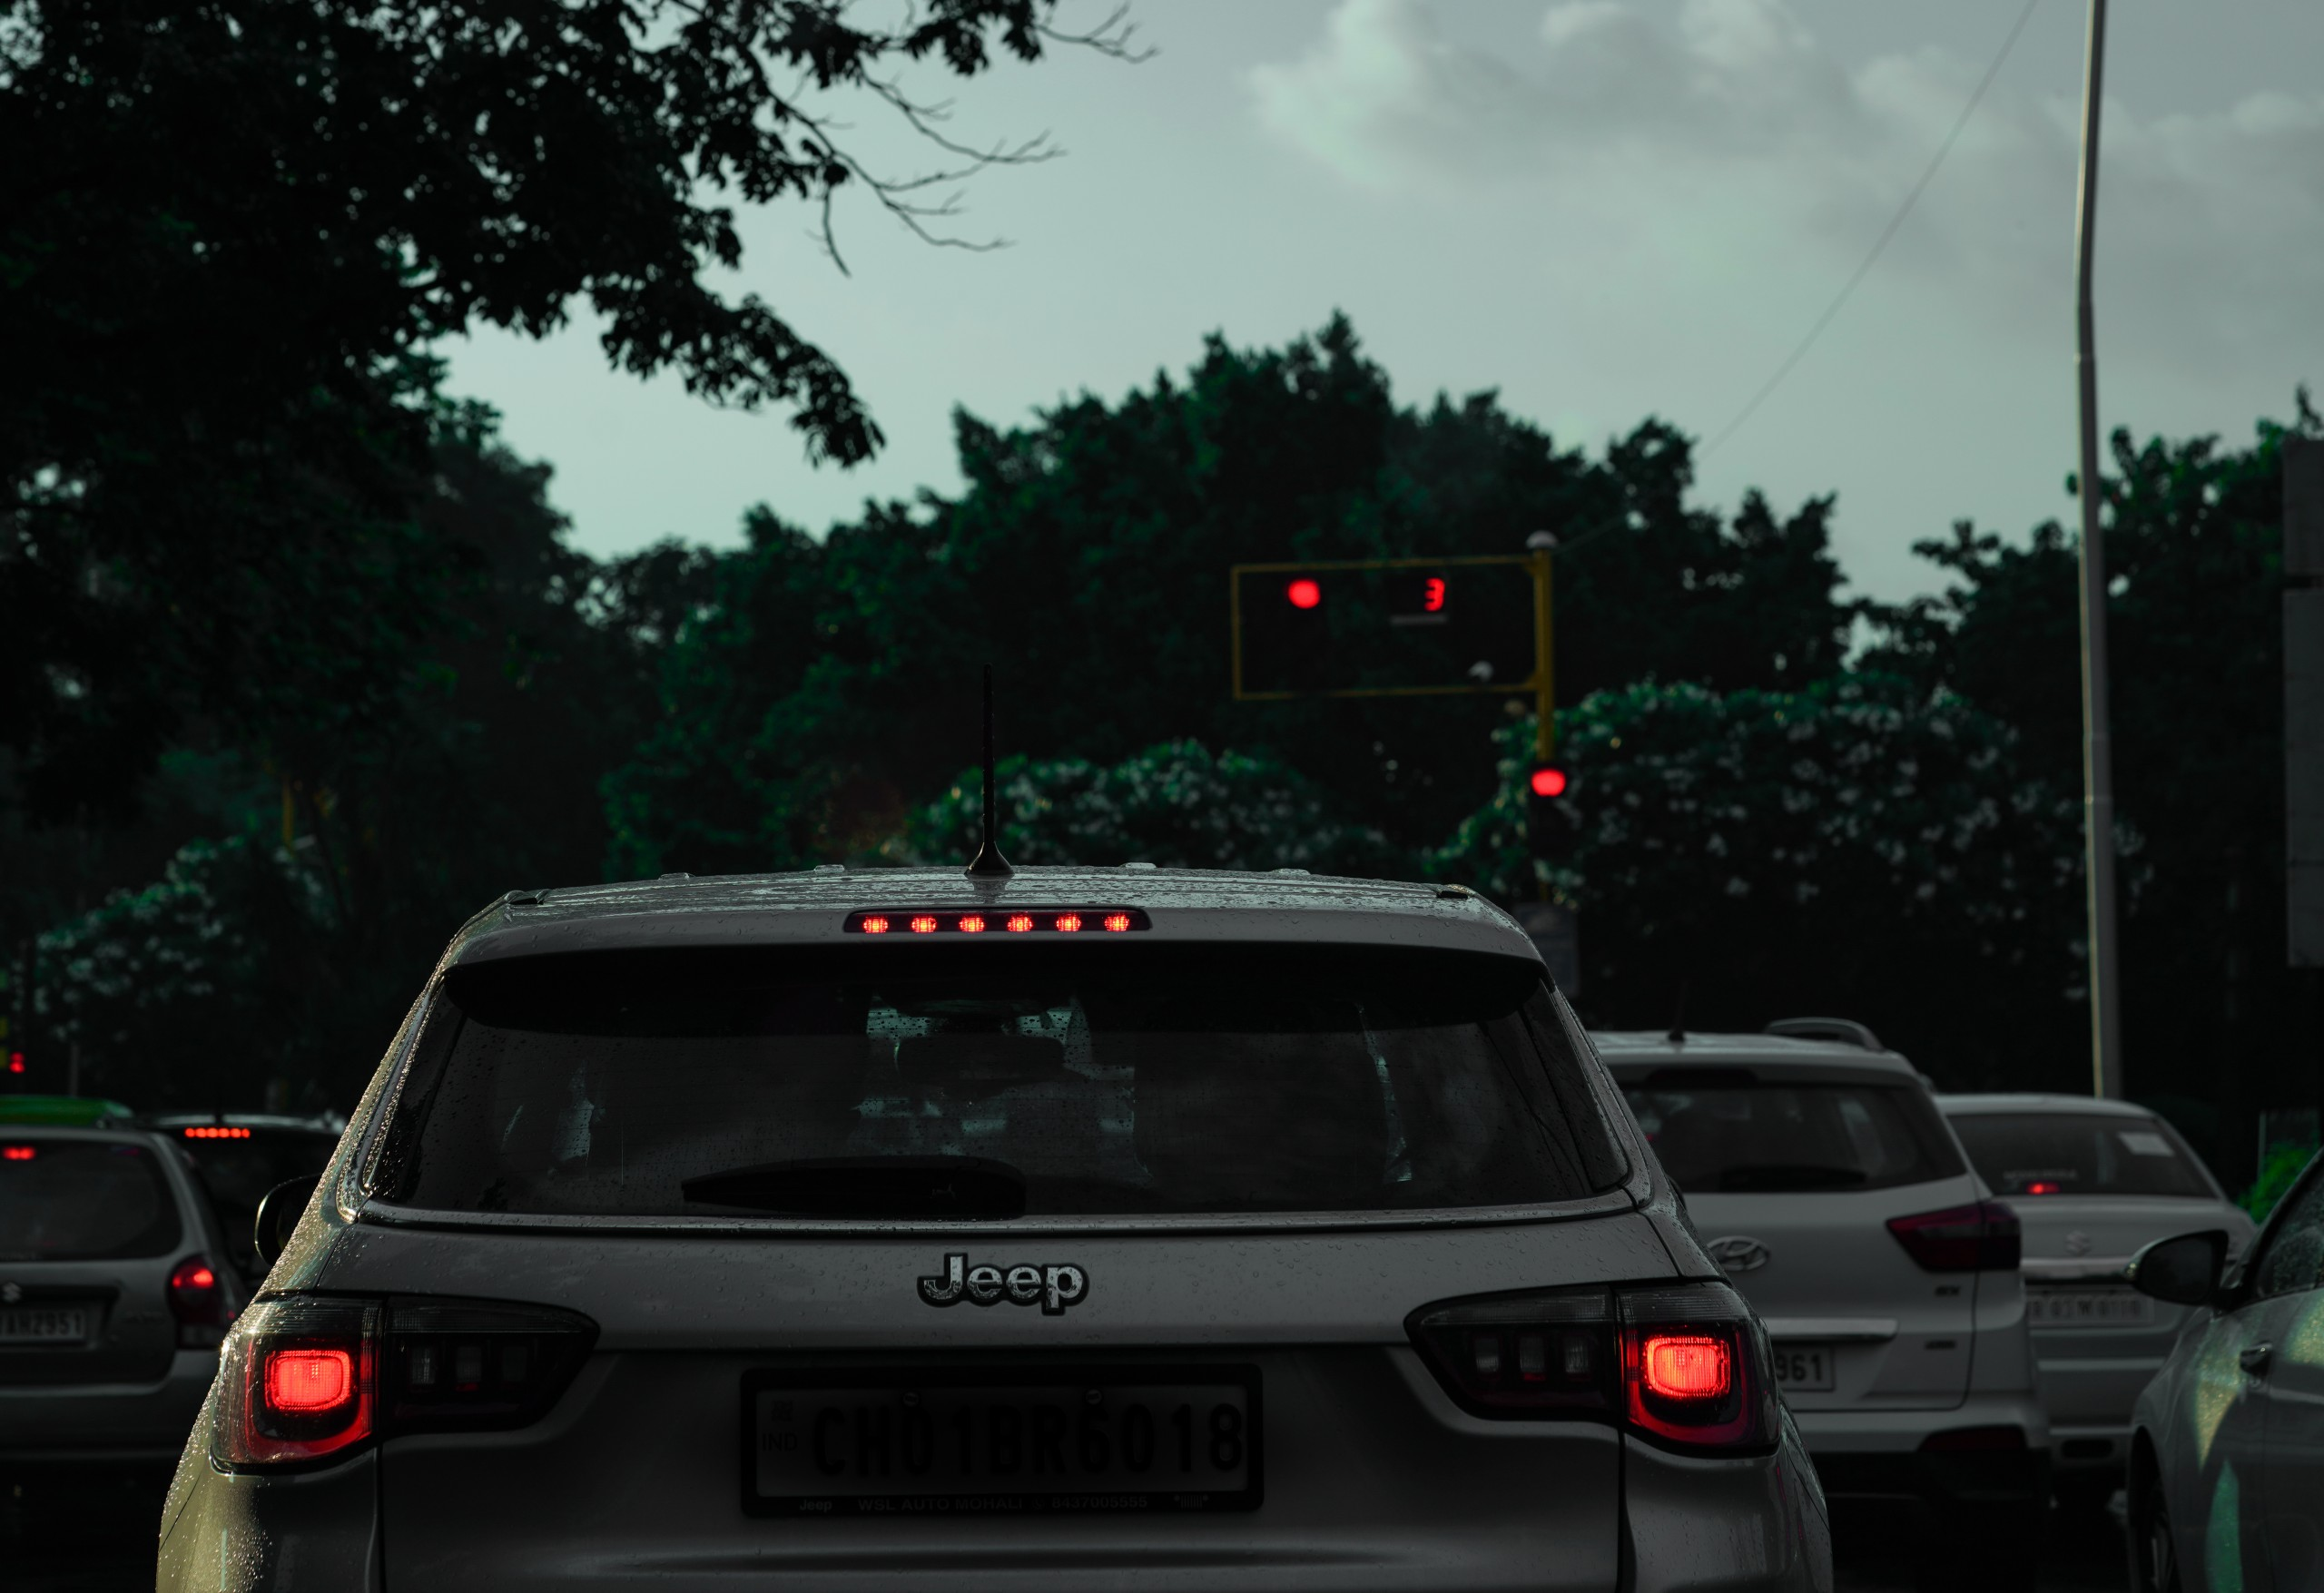 Transportation of cars on the road and red lights